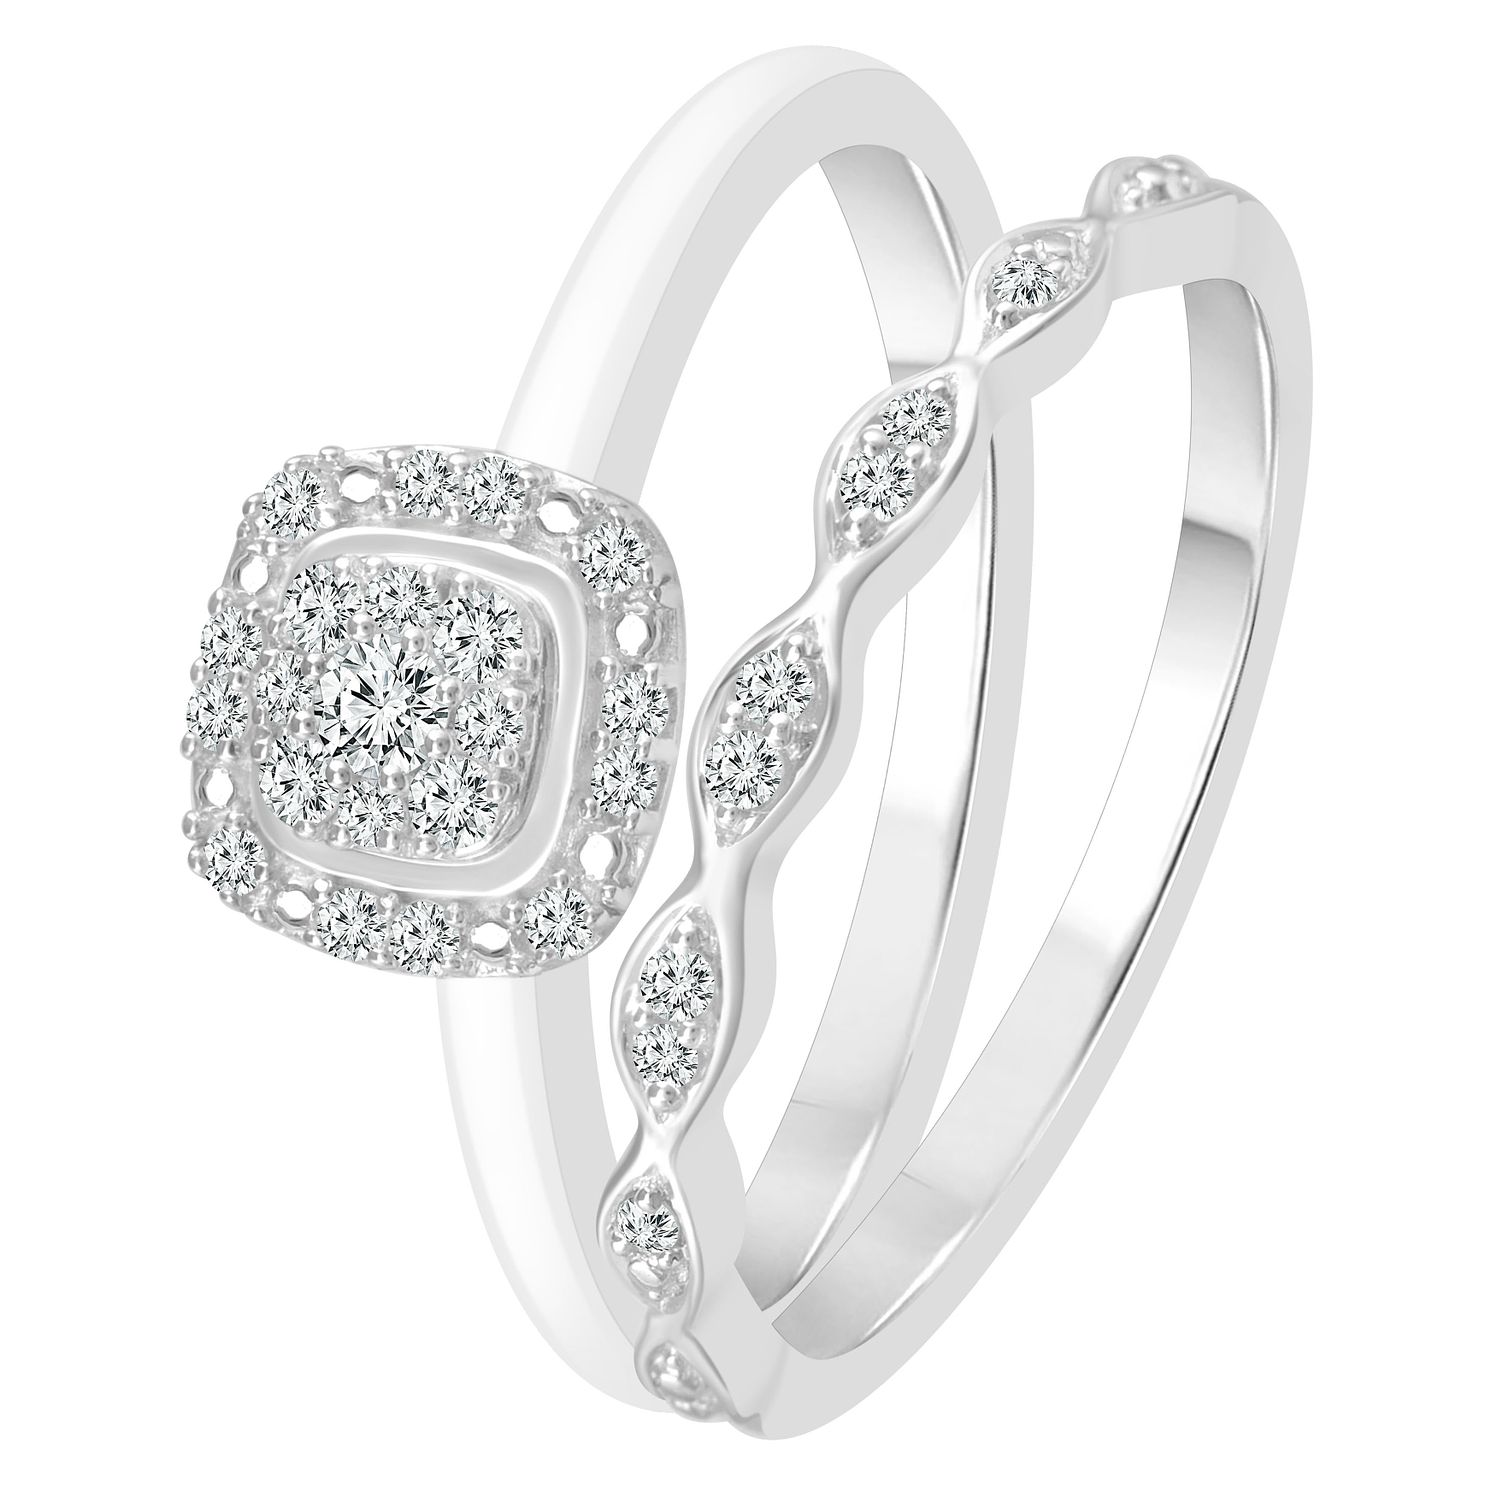 Perfect Fit 9ct White Gold 0.15ct Diamond Bridal Set - Product number 4010930